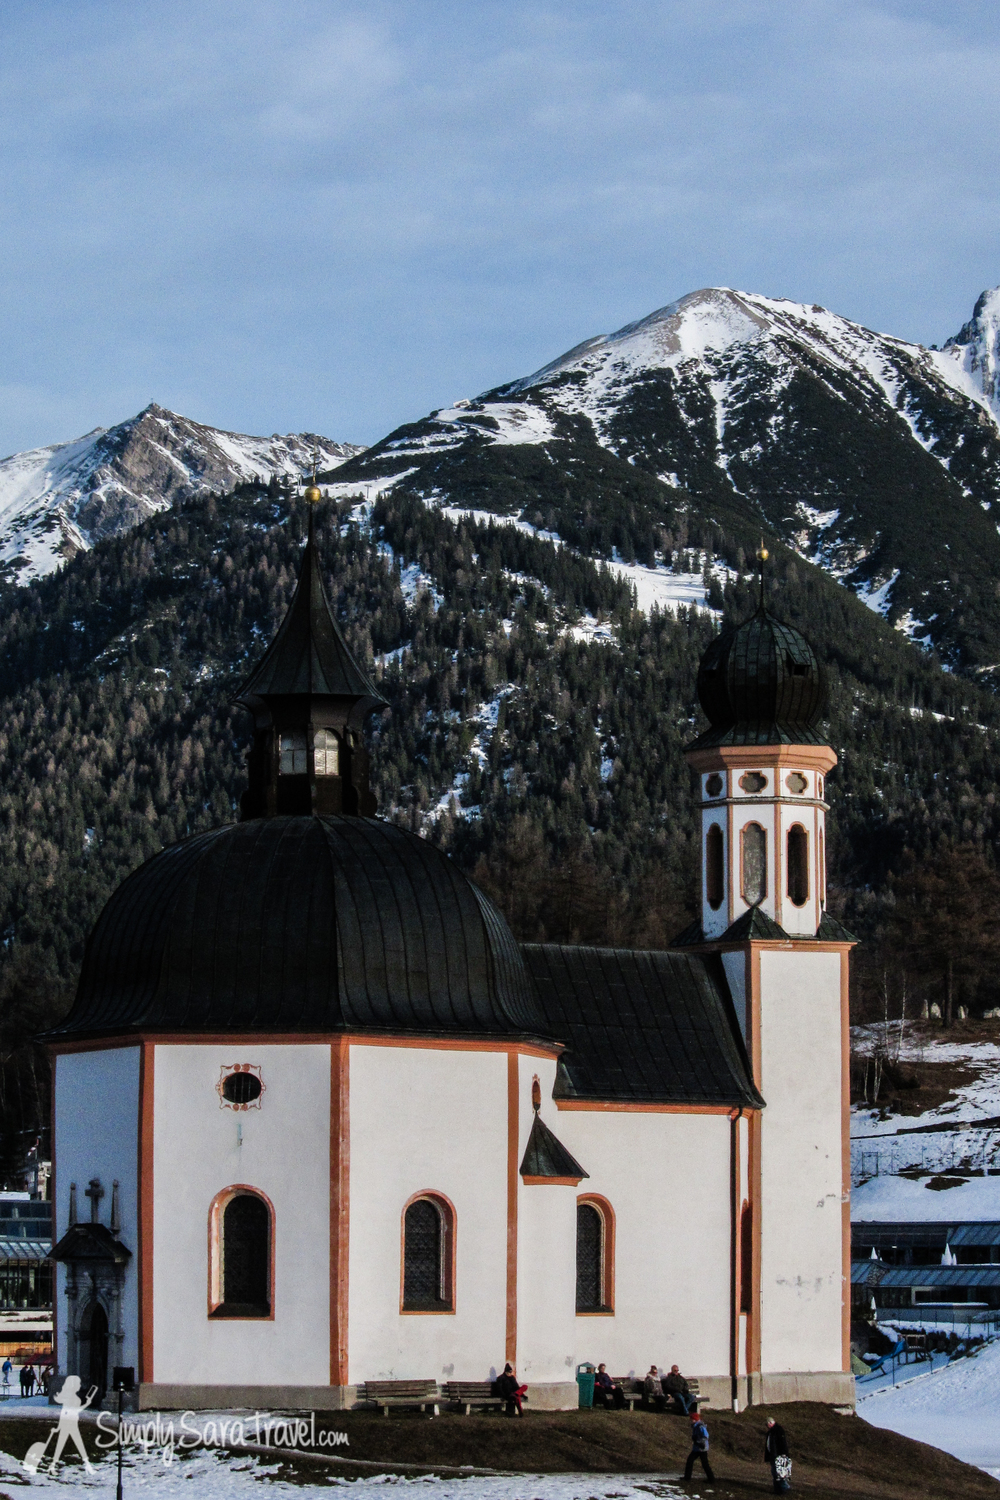 The Heilig Kreuz church